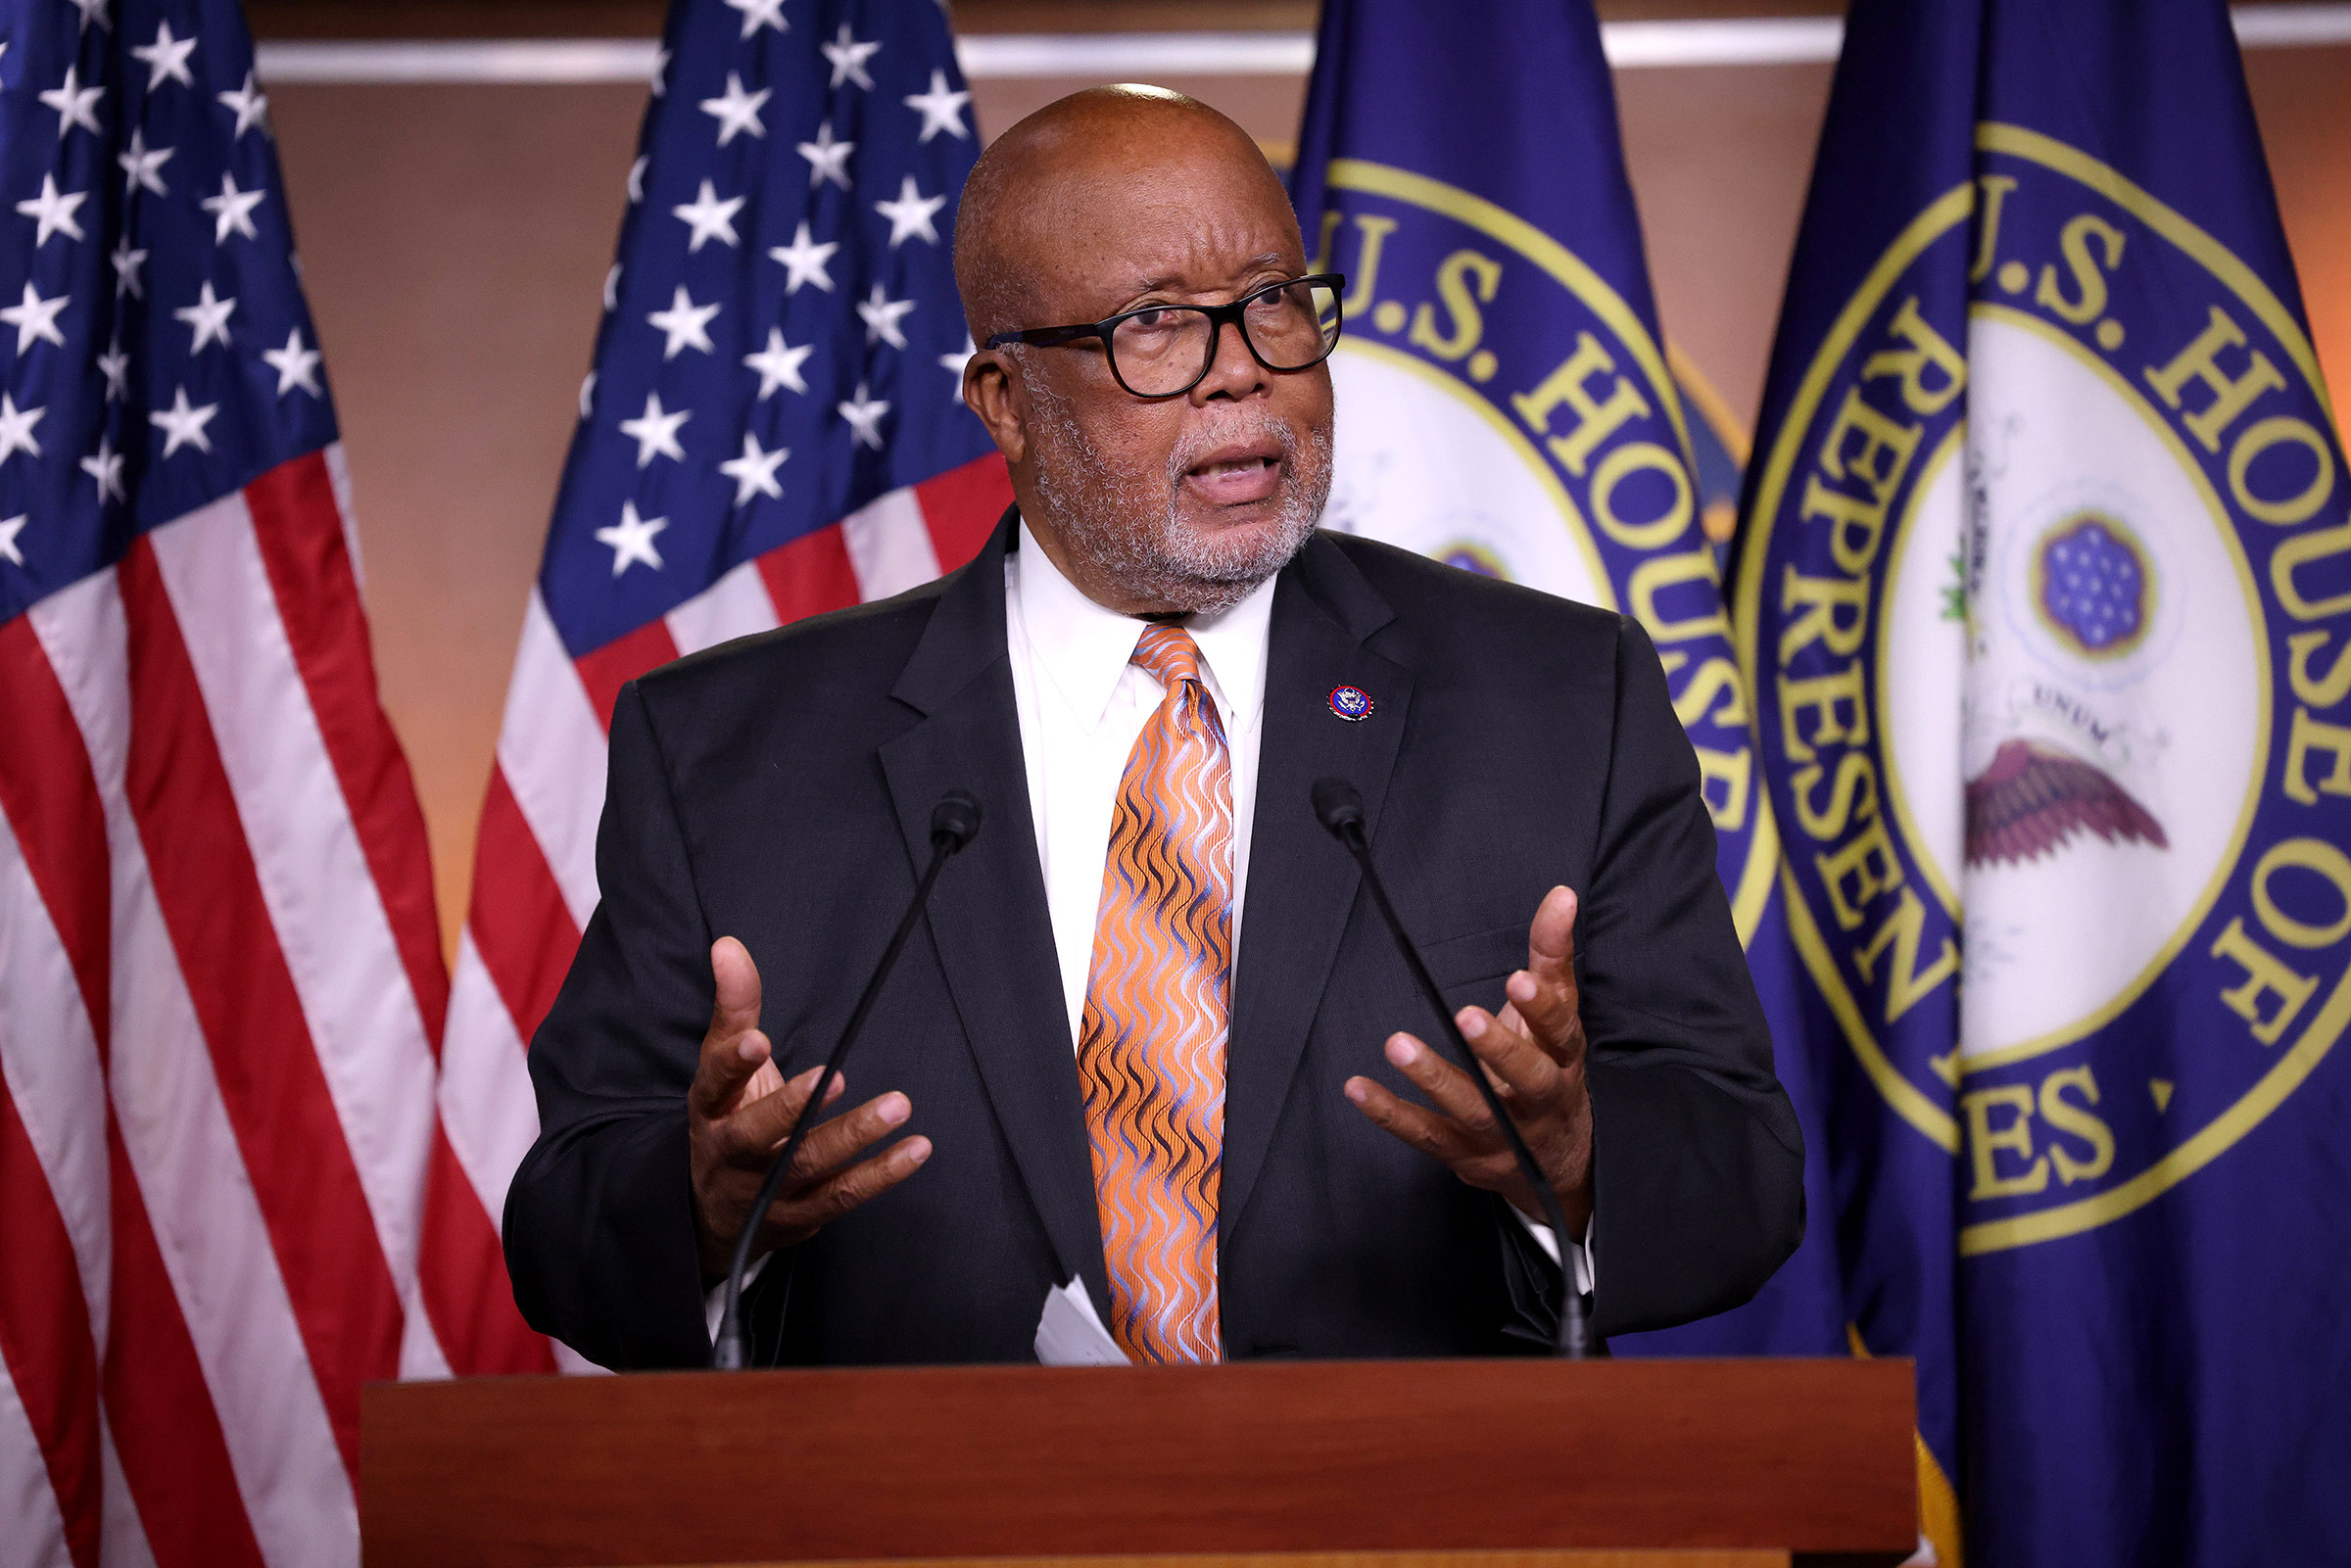 Rep. Bennie Thompson speaks during a press conference at the Capitol on May 19, in Washington, DC. Win McNamee/Getty Images